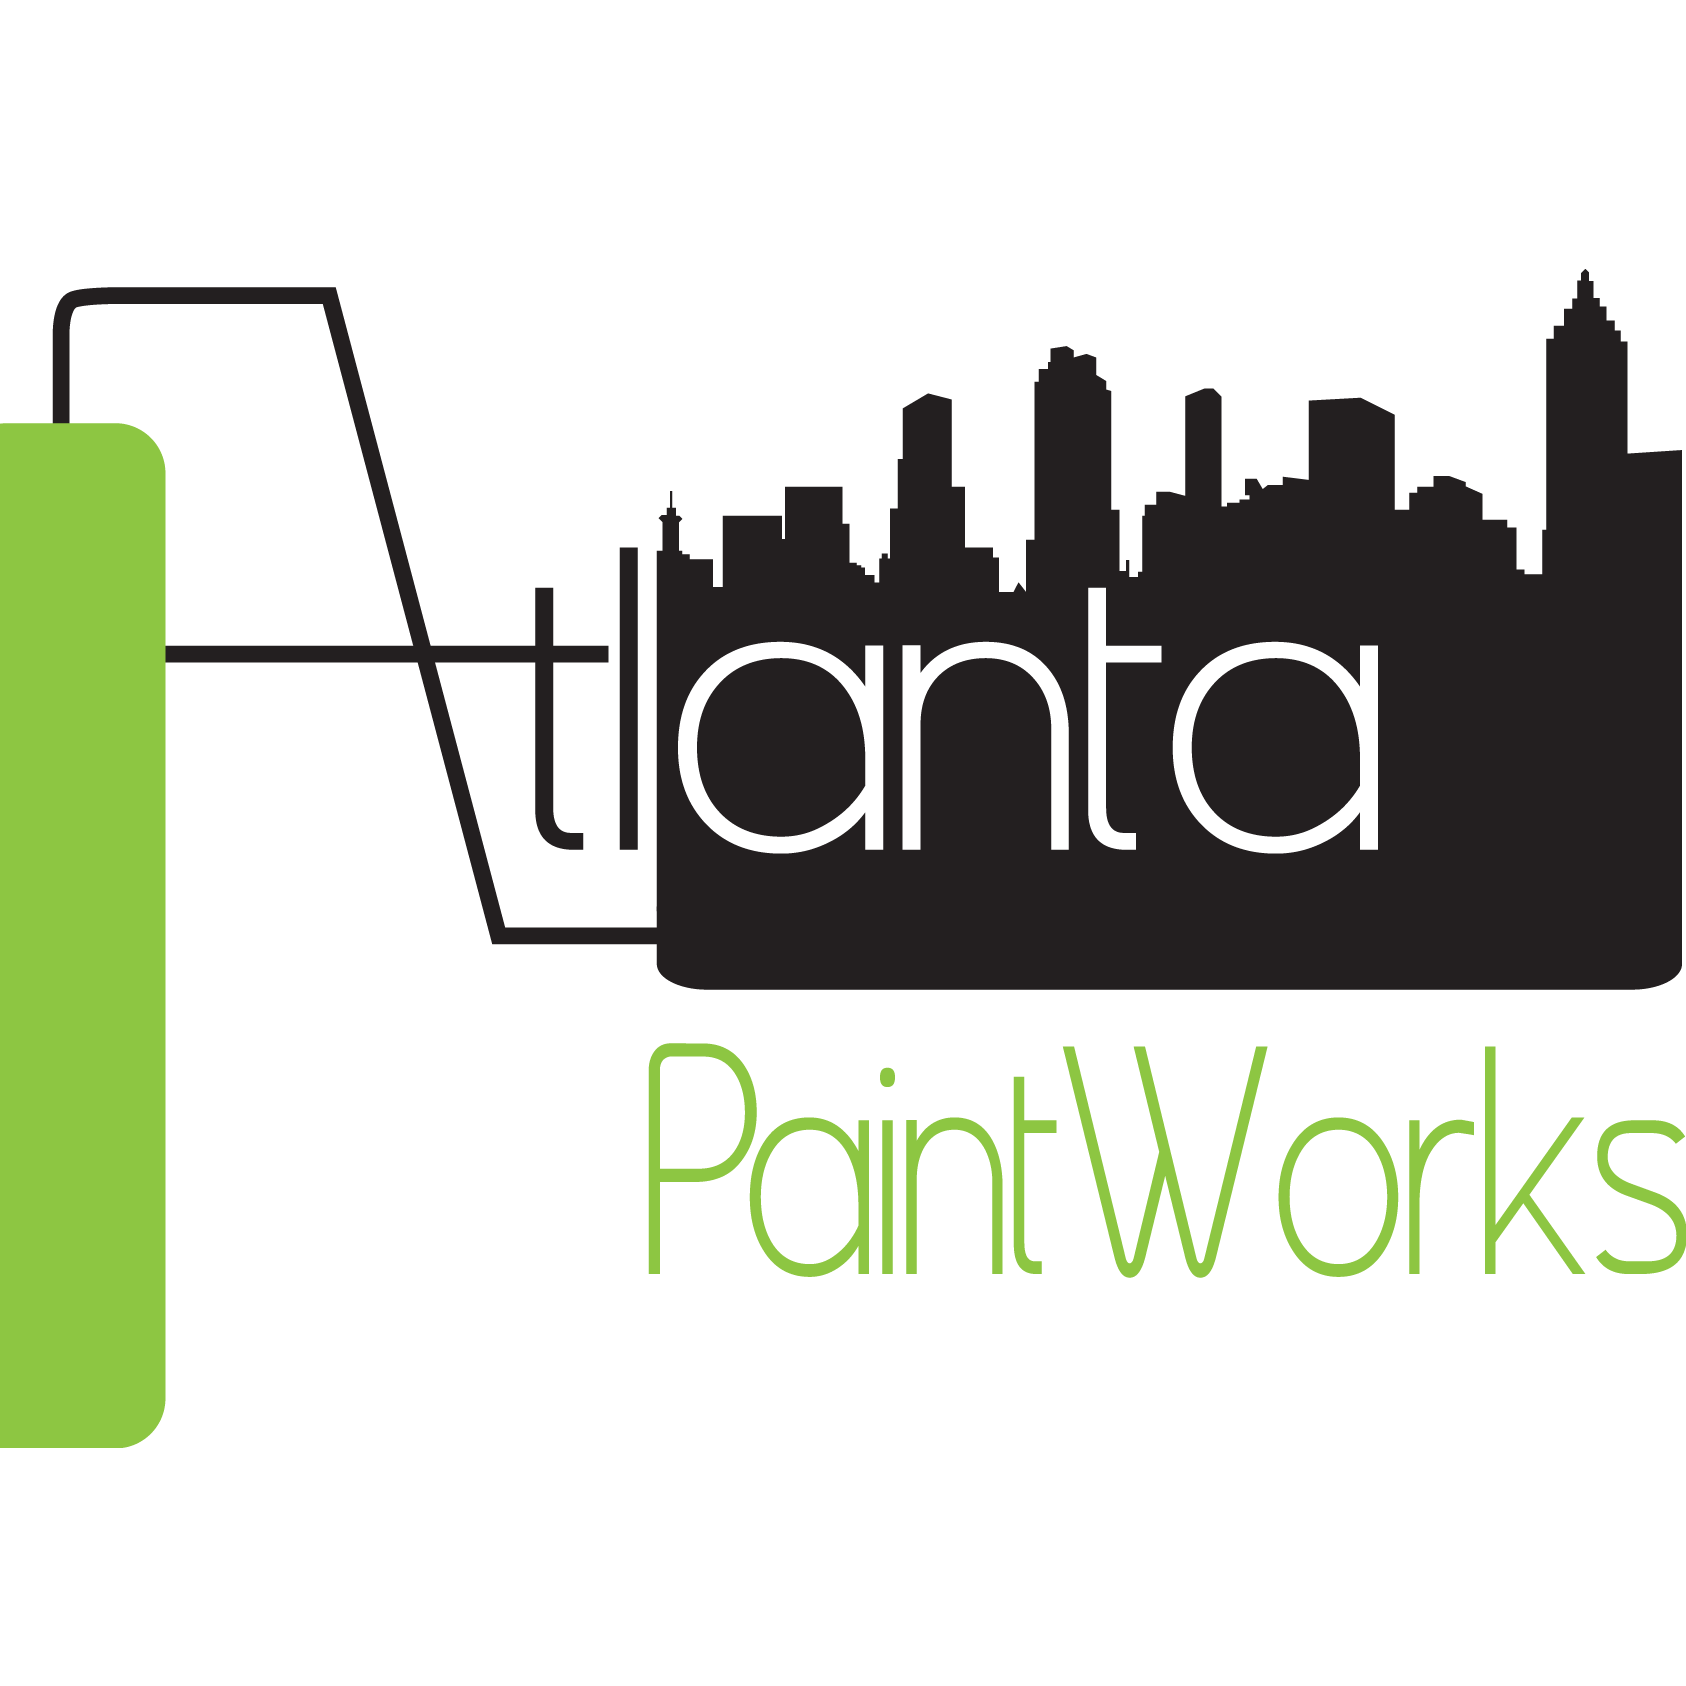 Atlanta PaintWorks LLC - Grayson, GA 30017 - (404)771-6243 | ShowMeLocal.com